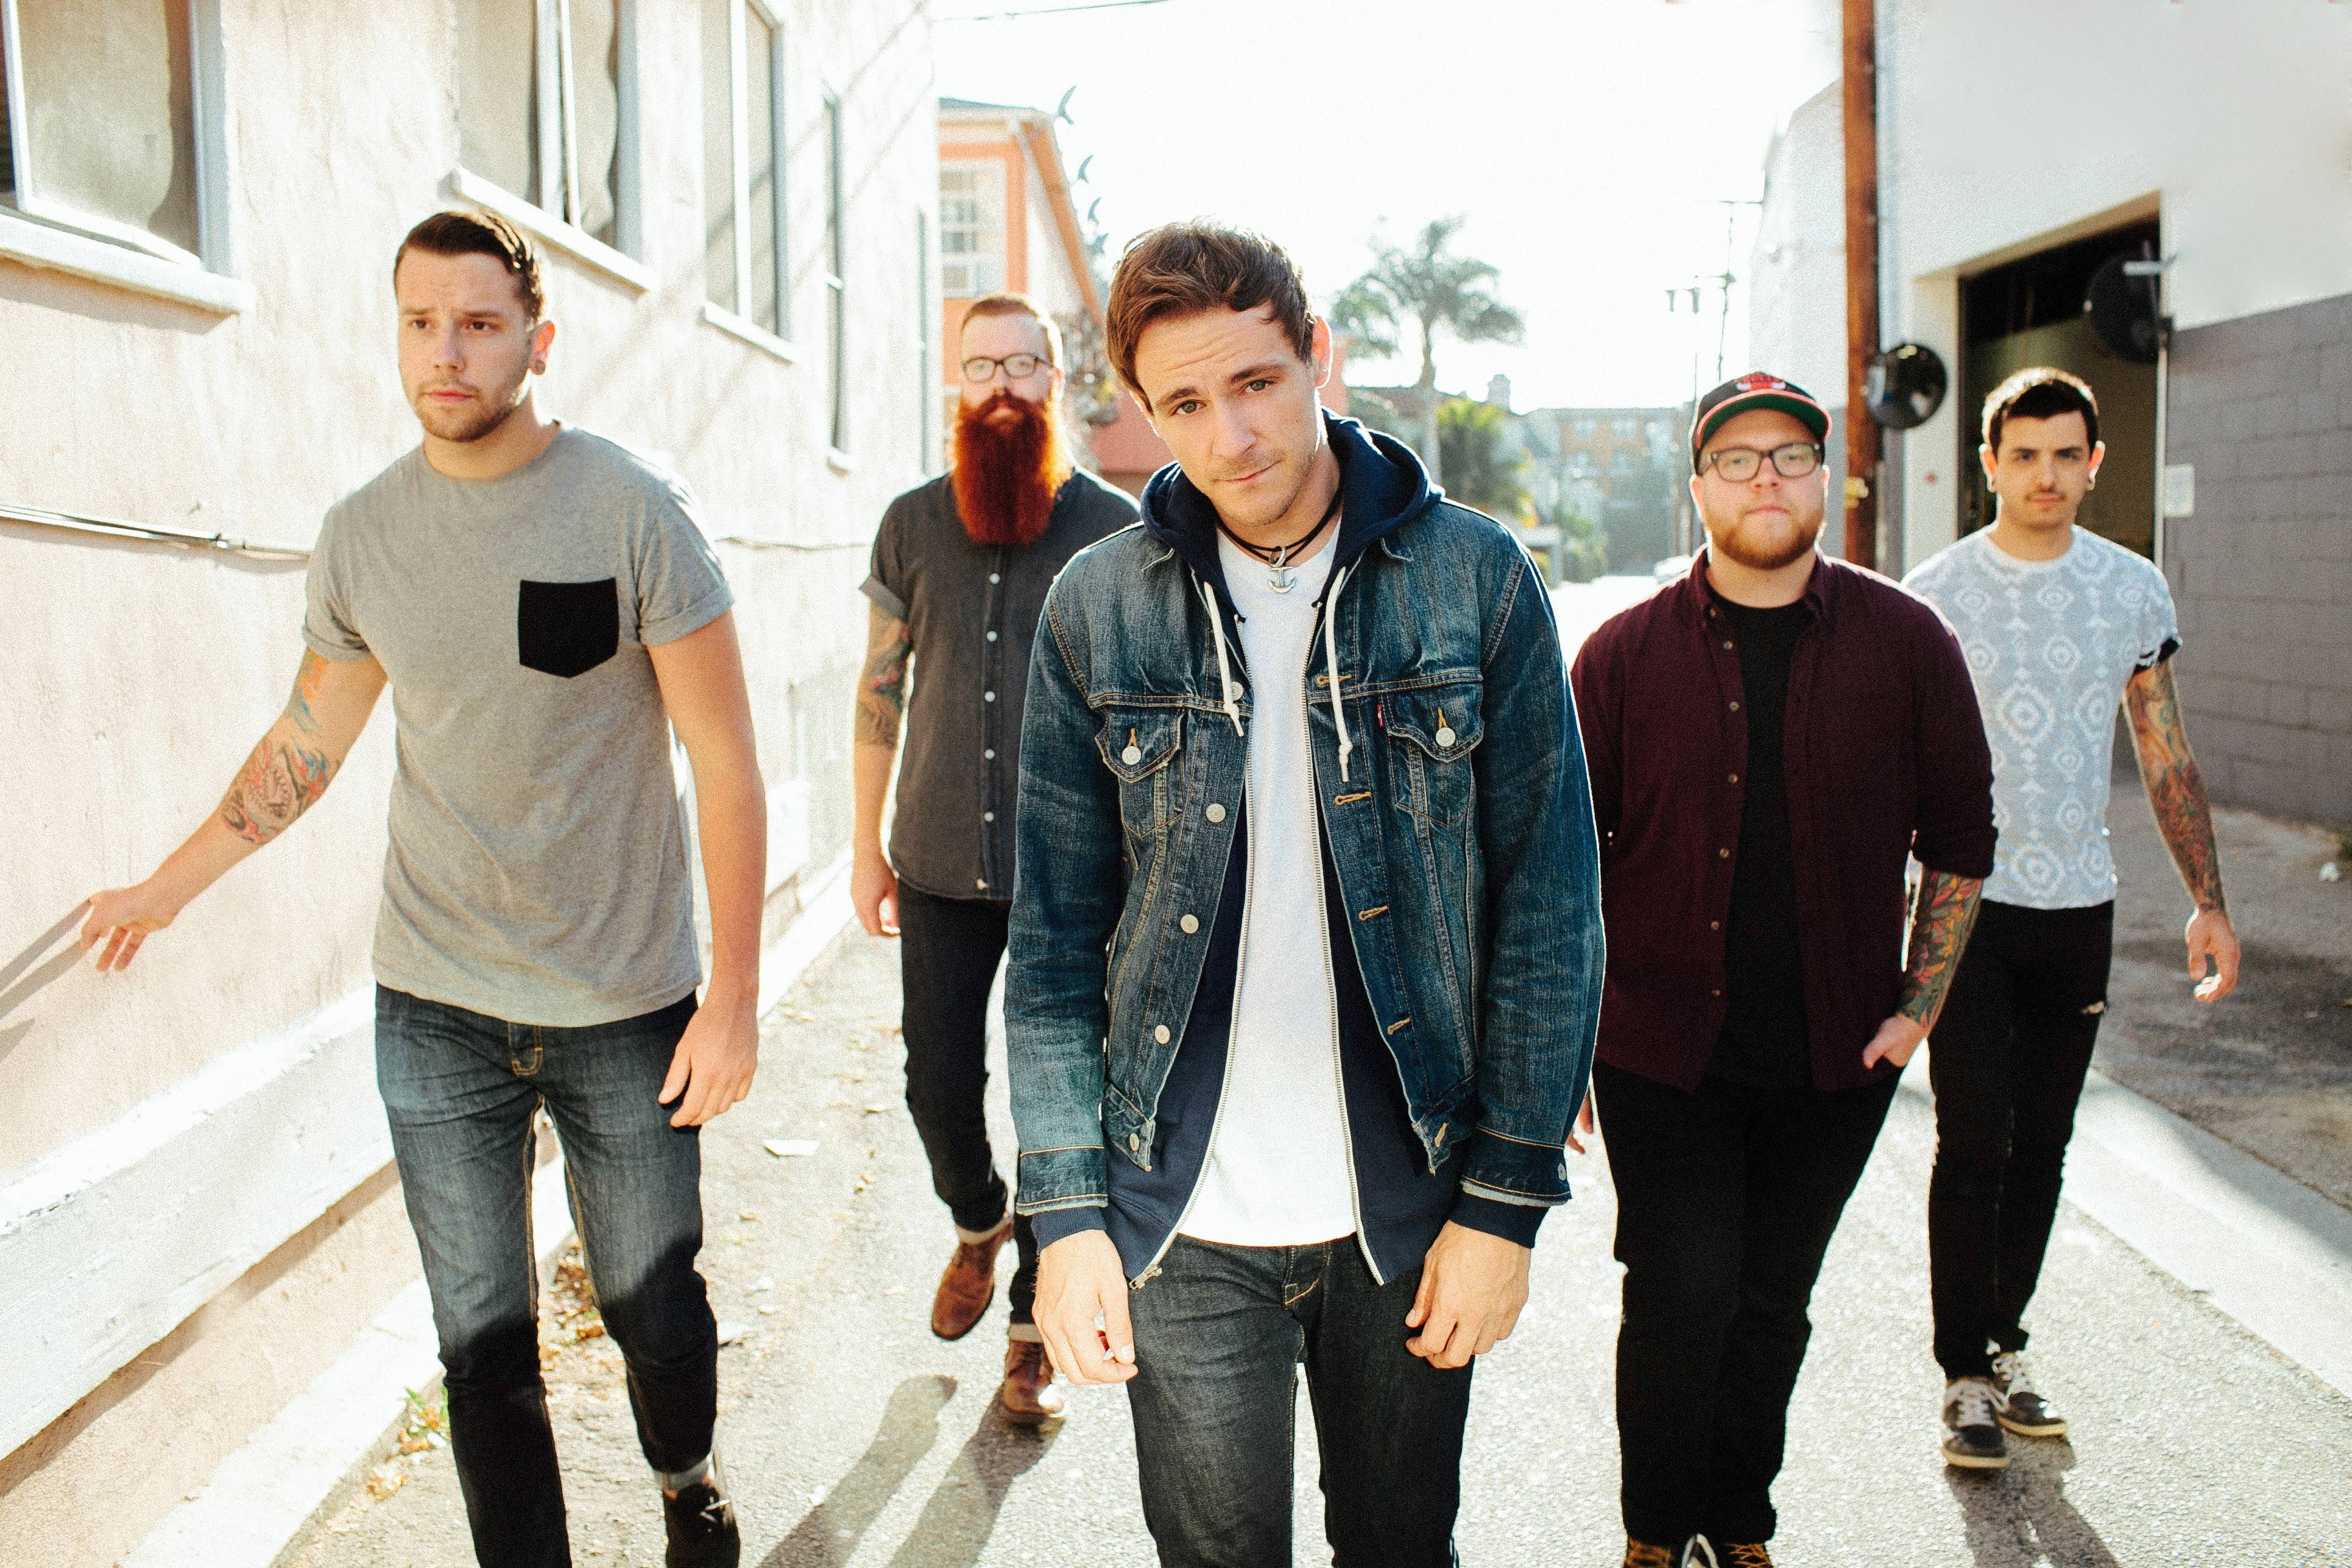 Rockford band The Color Morale will perform this weekend at the Warped Tour in the South suburbs.